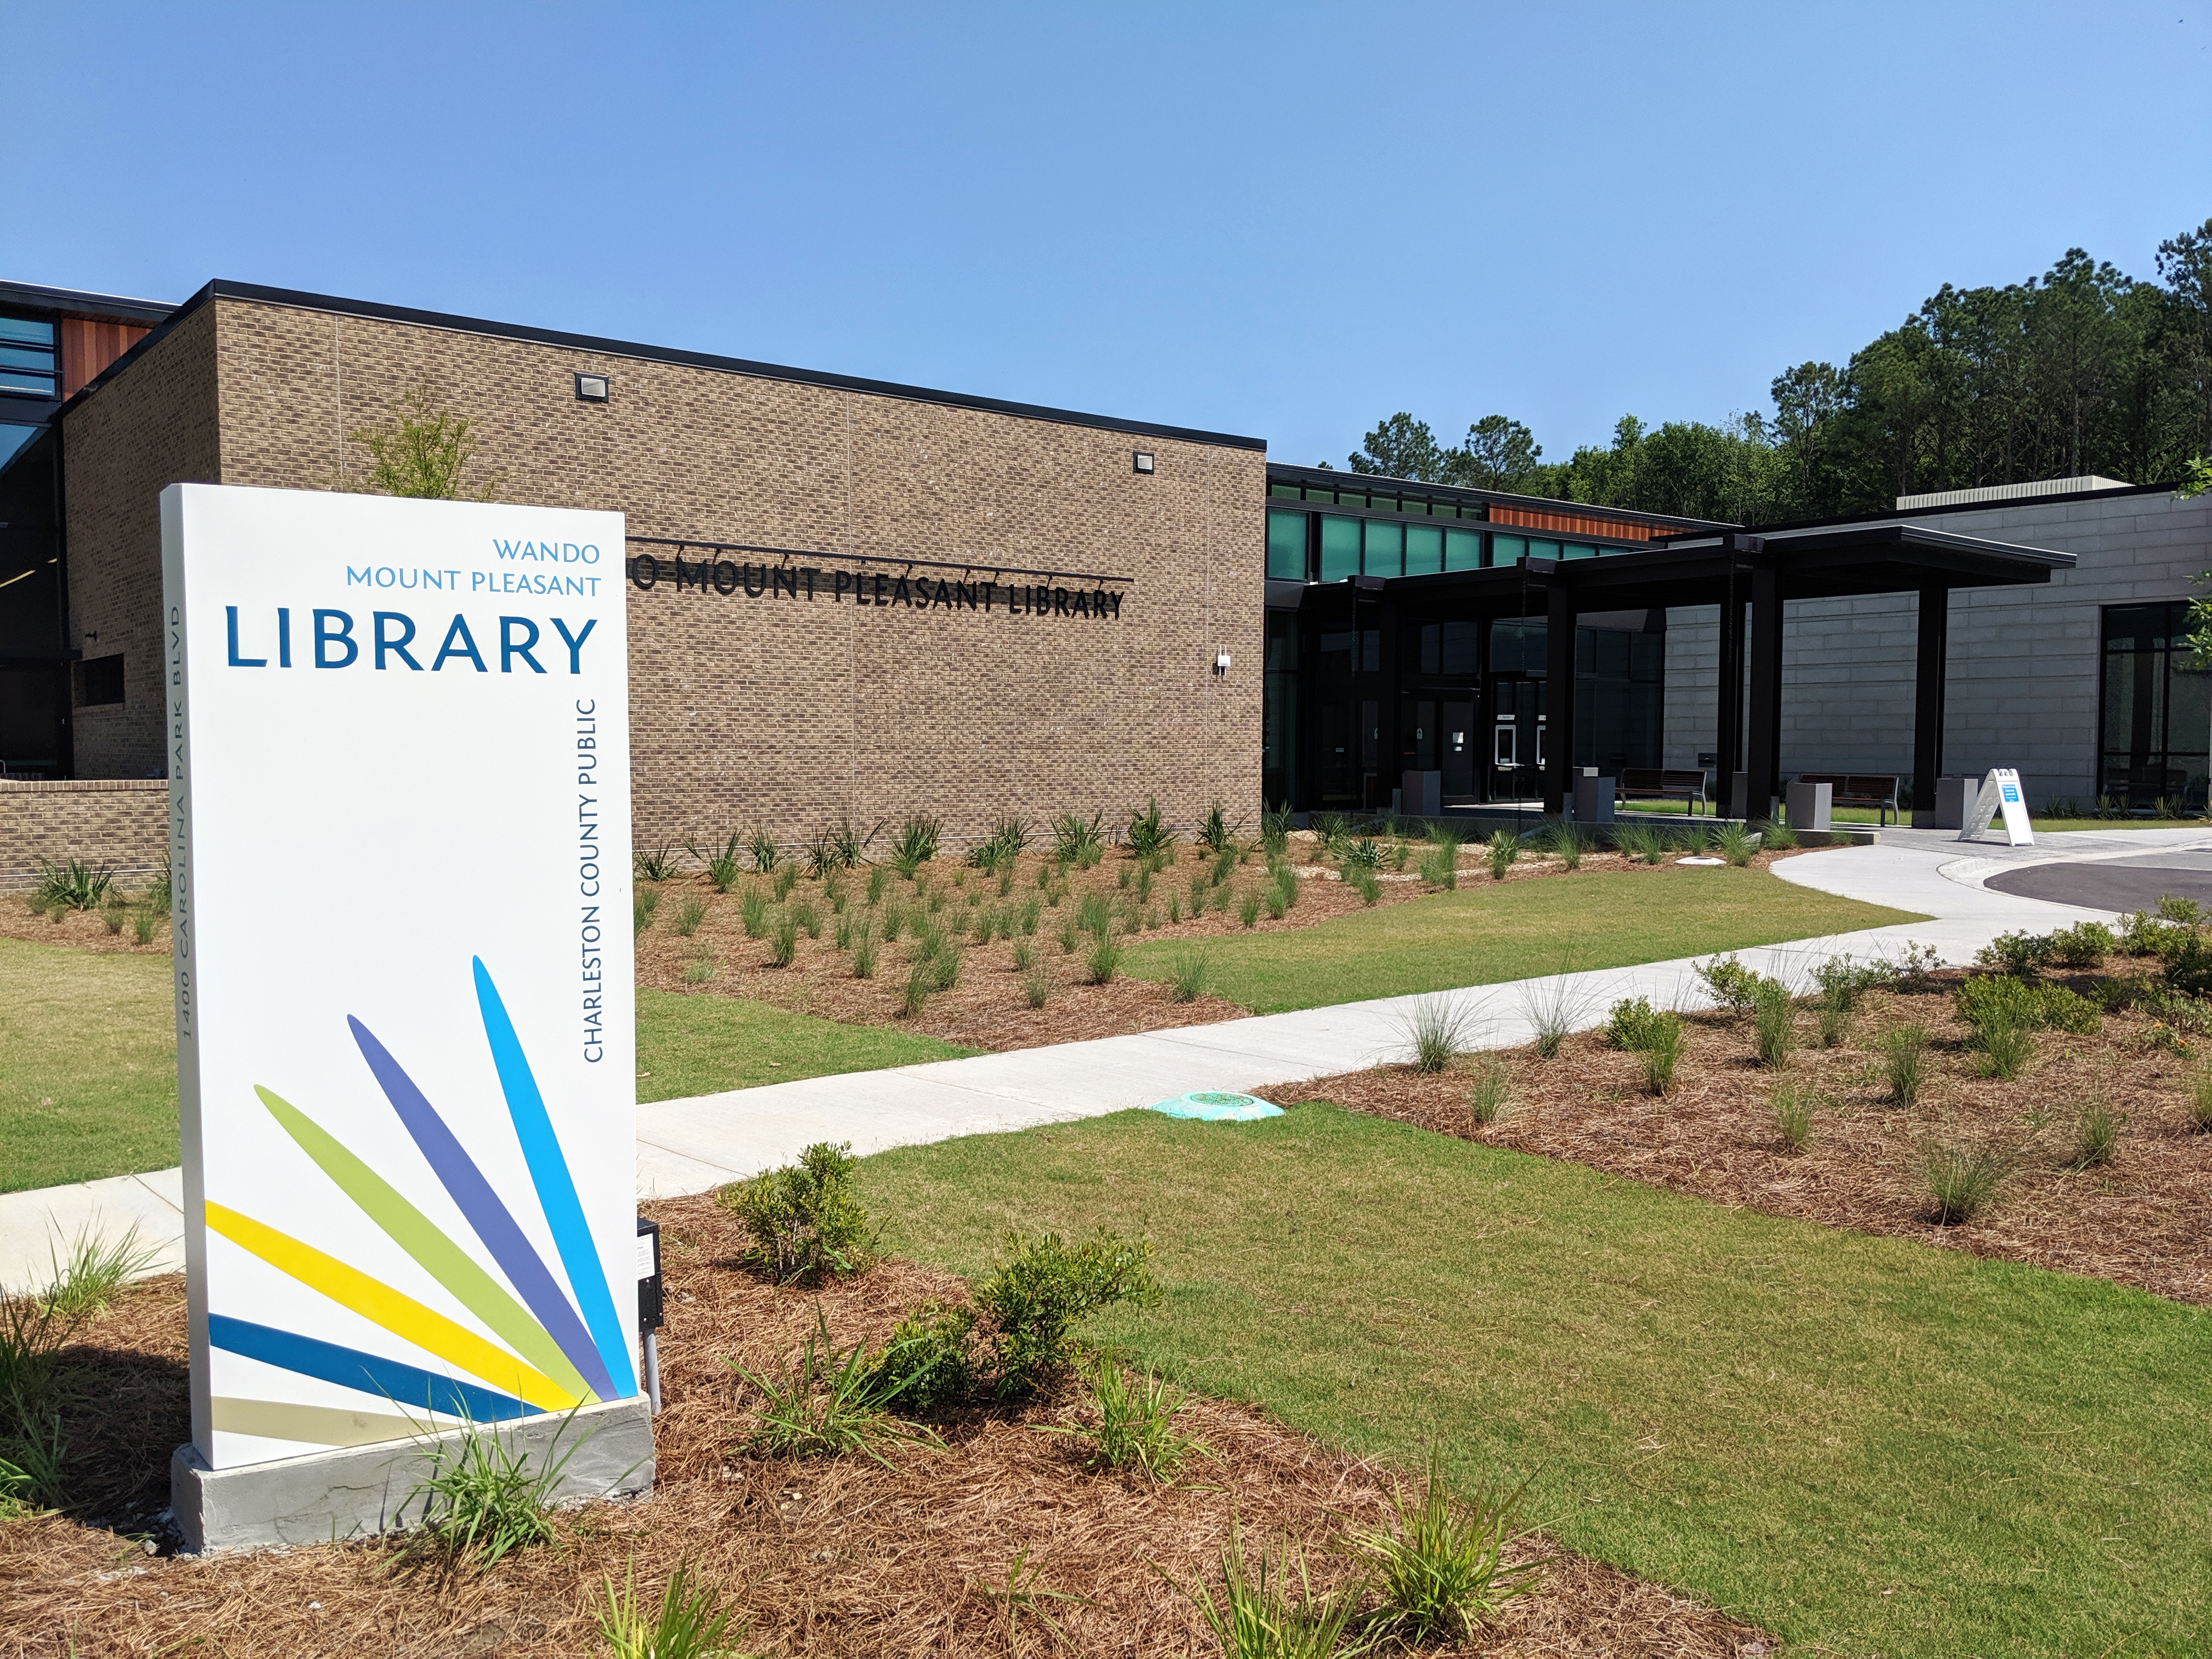 Wando Mount Pleasant Library awarded in annual architecture design awards